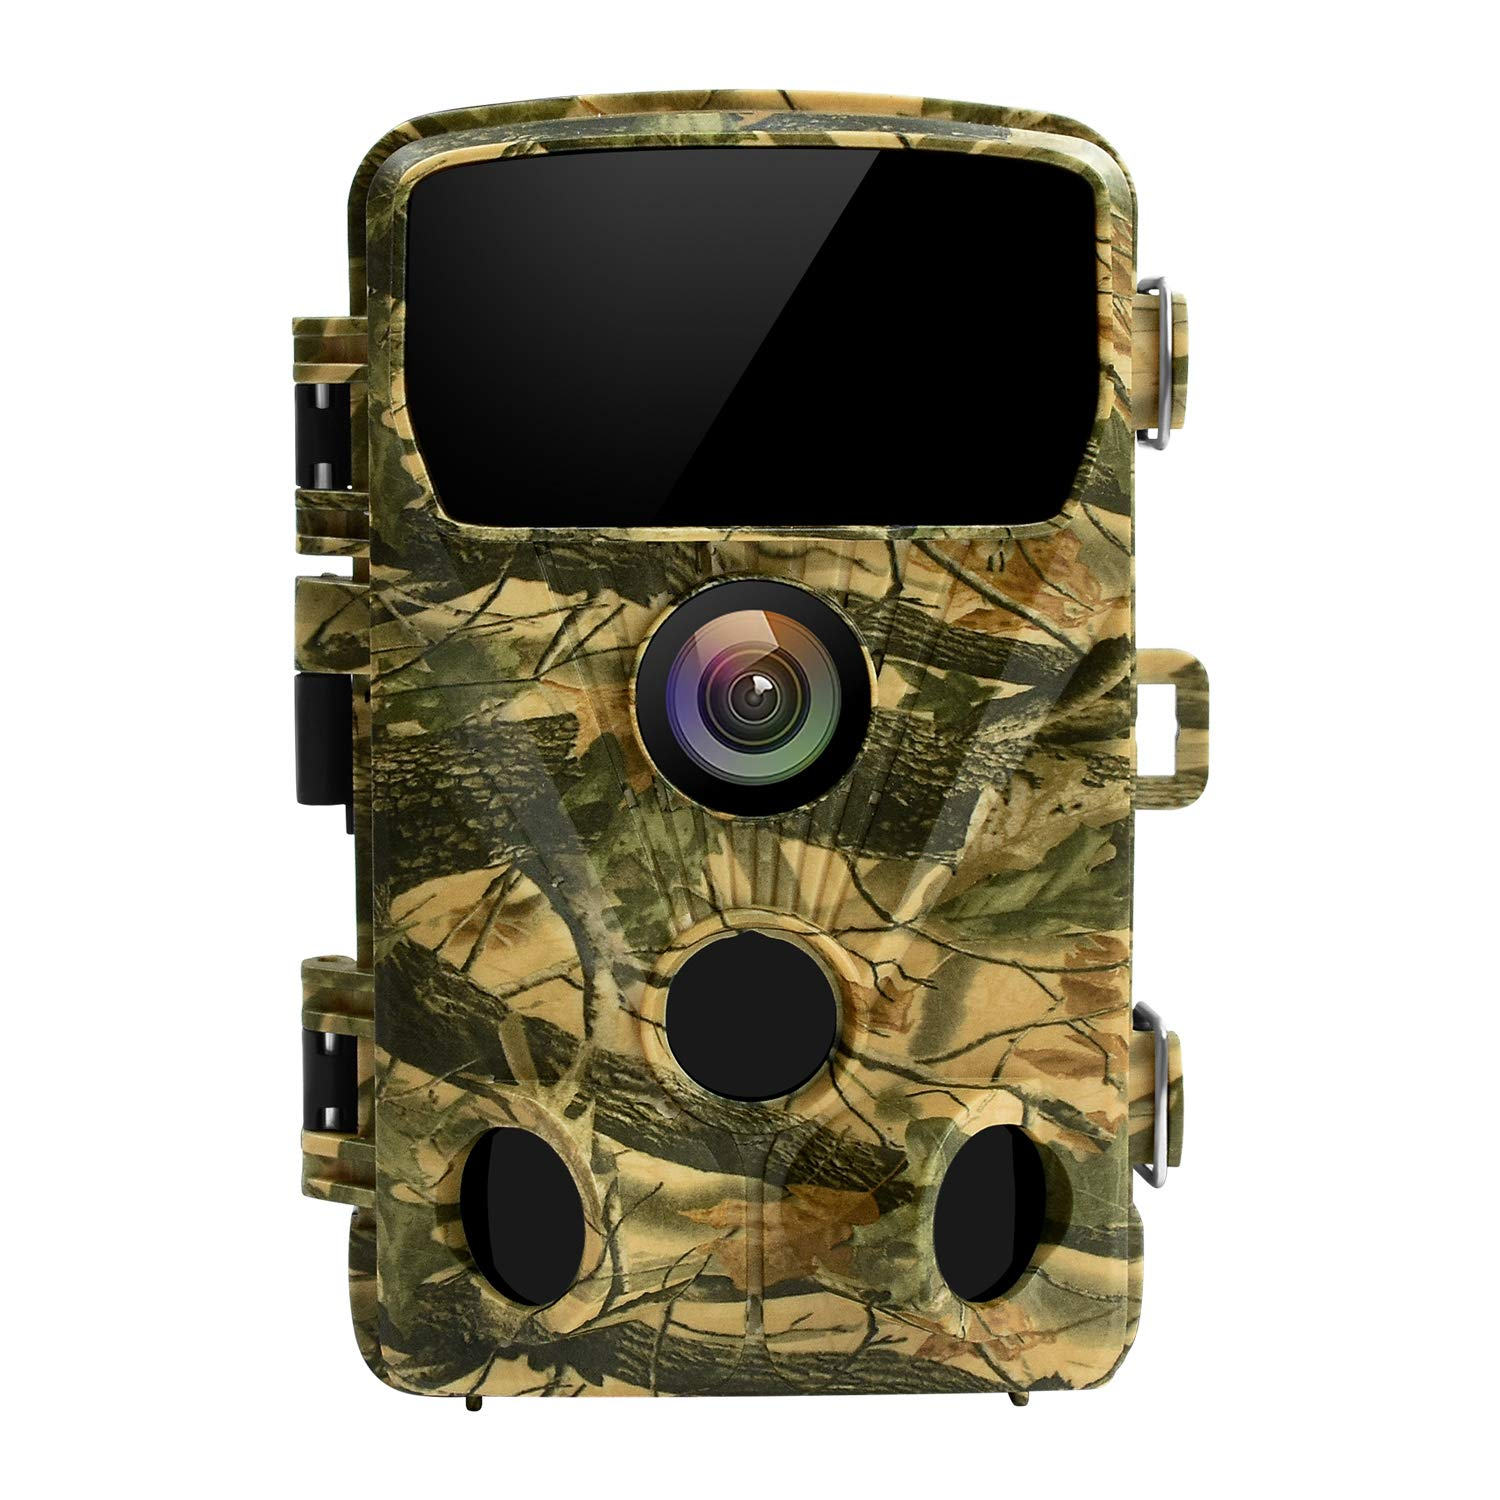 LETSCOM 14MP Trail Game Camera 0.4S Trigger Speed, Waterproof HD Wildlife Scouting Cam 42 No-Glow IR LEDs, 120° Detection Angle for Hunting and Outdoor Surveillance Yellow by LETSCOM